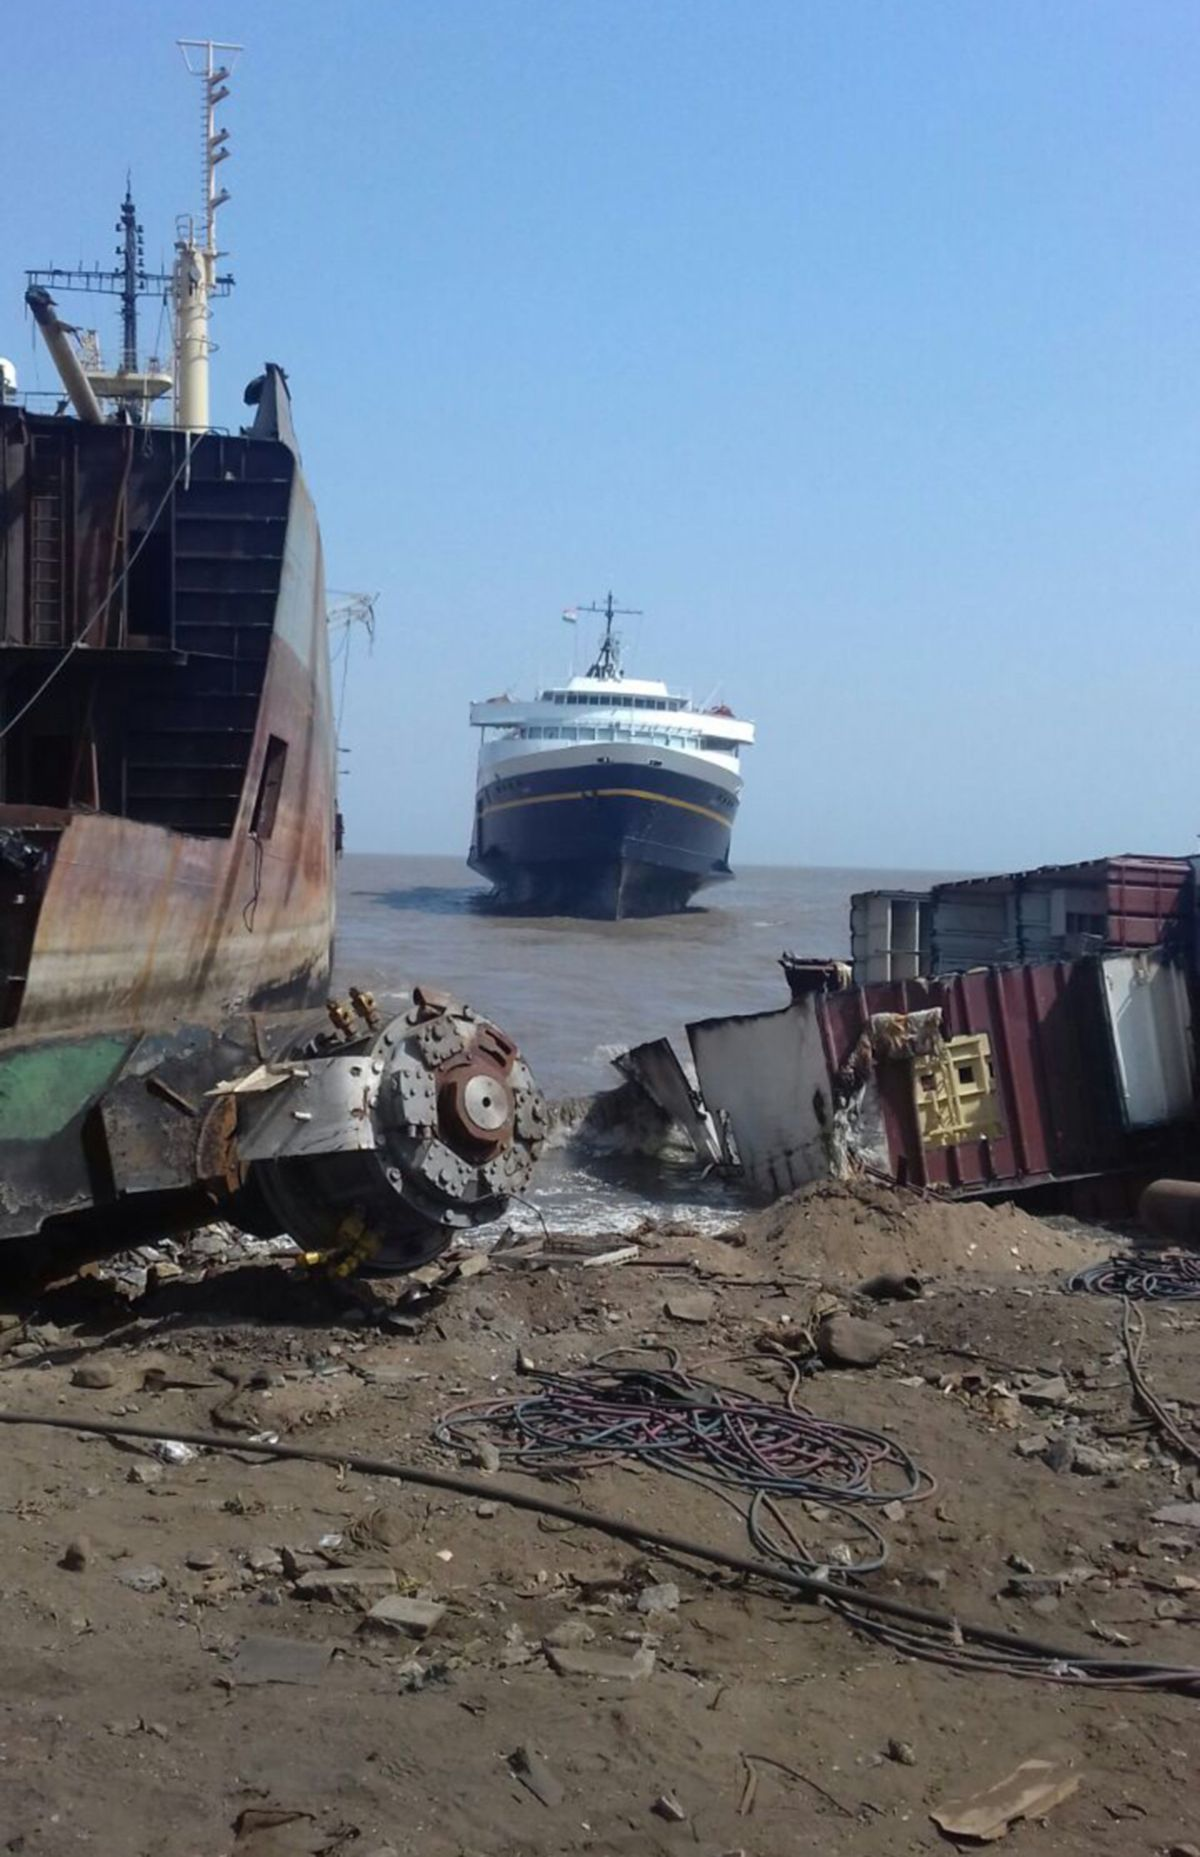 The M/V Taku, which served as a ferry in Alaska for more than a half-century, sits aground at high tide in Alang, India, where it's set to be dismantled for scrap and recycling. The state sold the Taku for $171,000 earlier this year to Jabal Al Lawz Trading Est., which is based in Dubai and sailed the ship across the Pacific. (Ben Evans / Jabal Al Lawz Trading Est.)